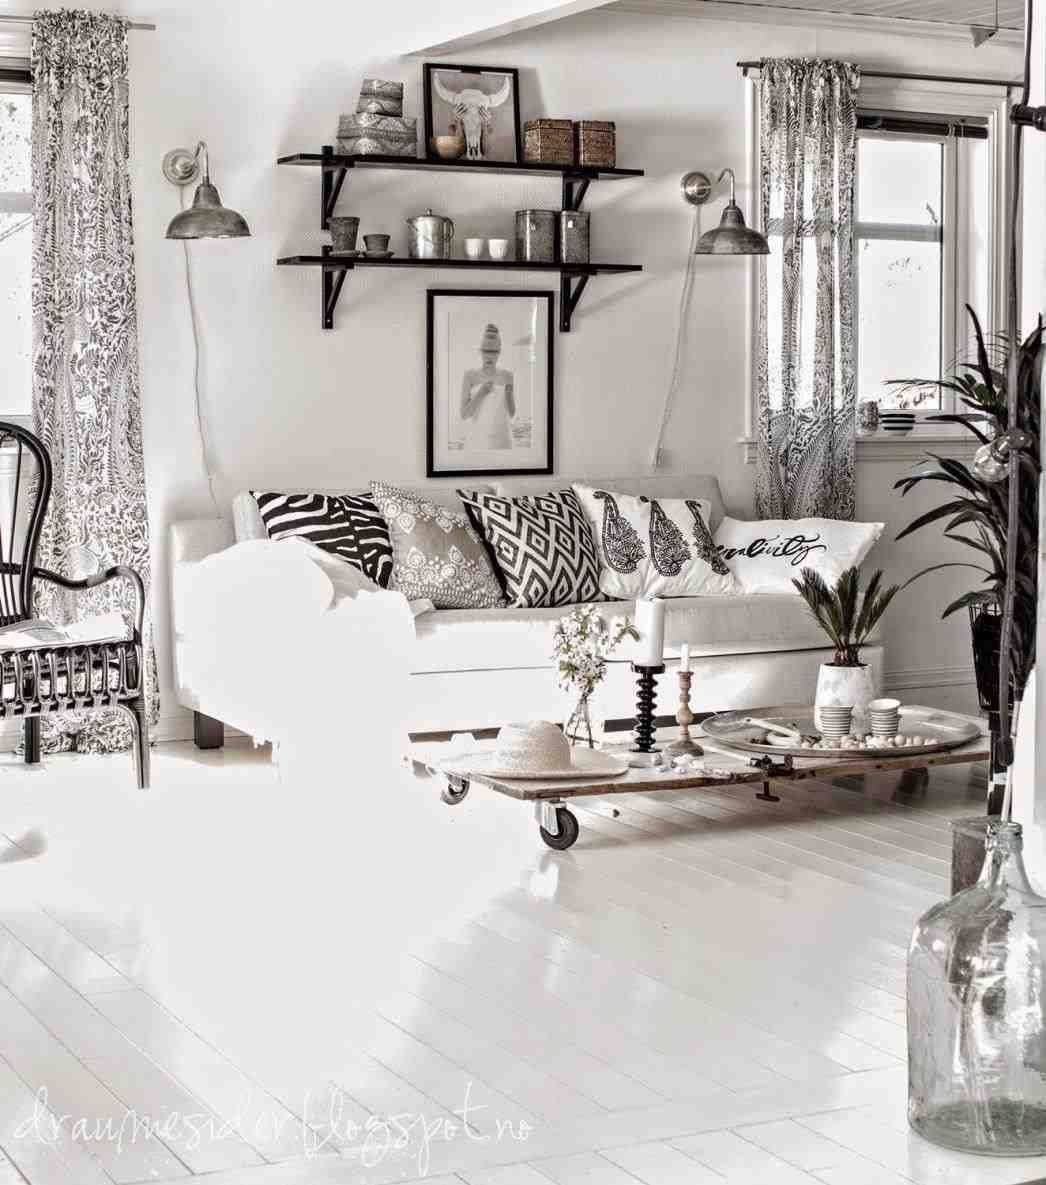 Beach Cottage Bedroom Living Room Ideas Decorating Country: Tags: Decorating Ideas Beach